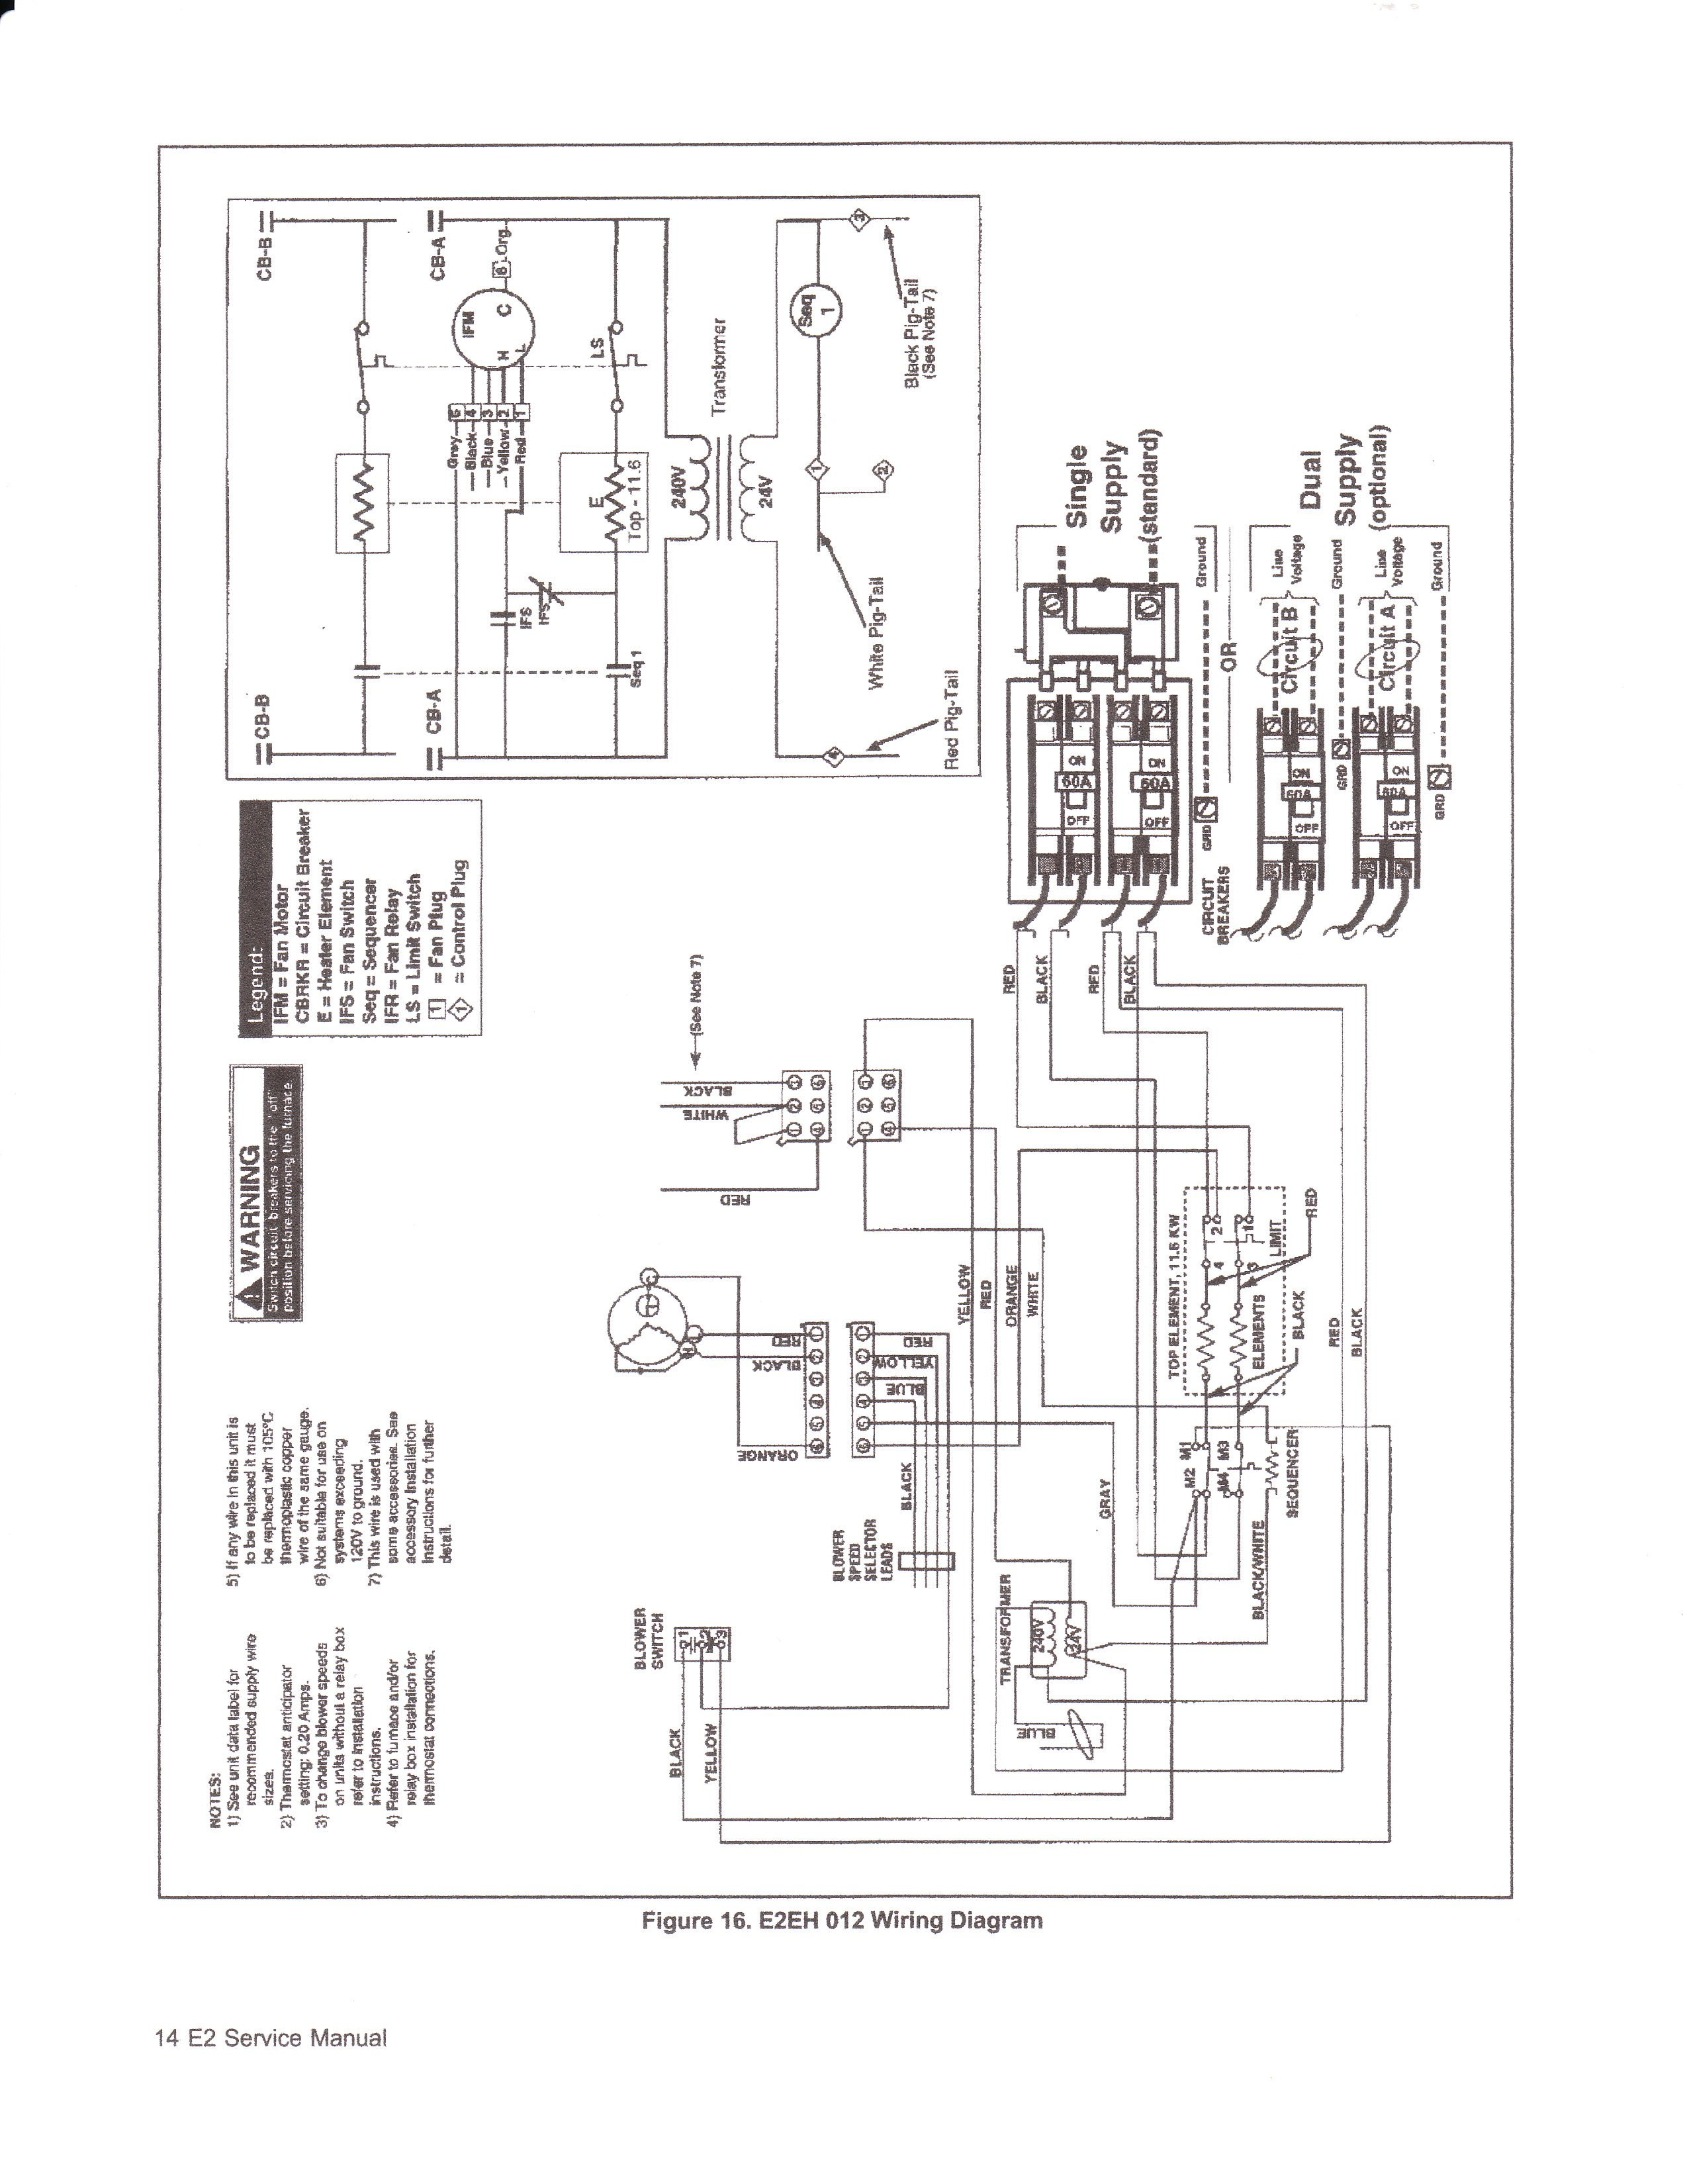 Miller Electric Furnace Wiring Diagram Collection